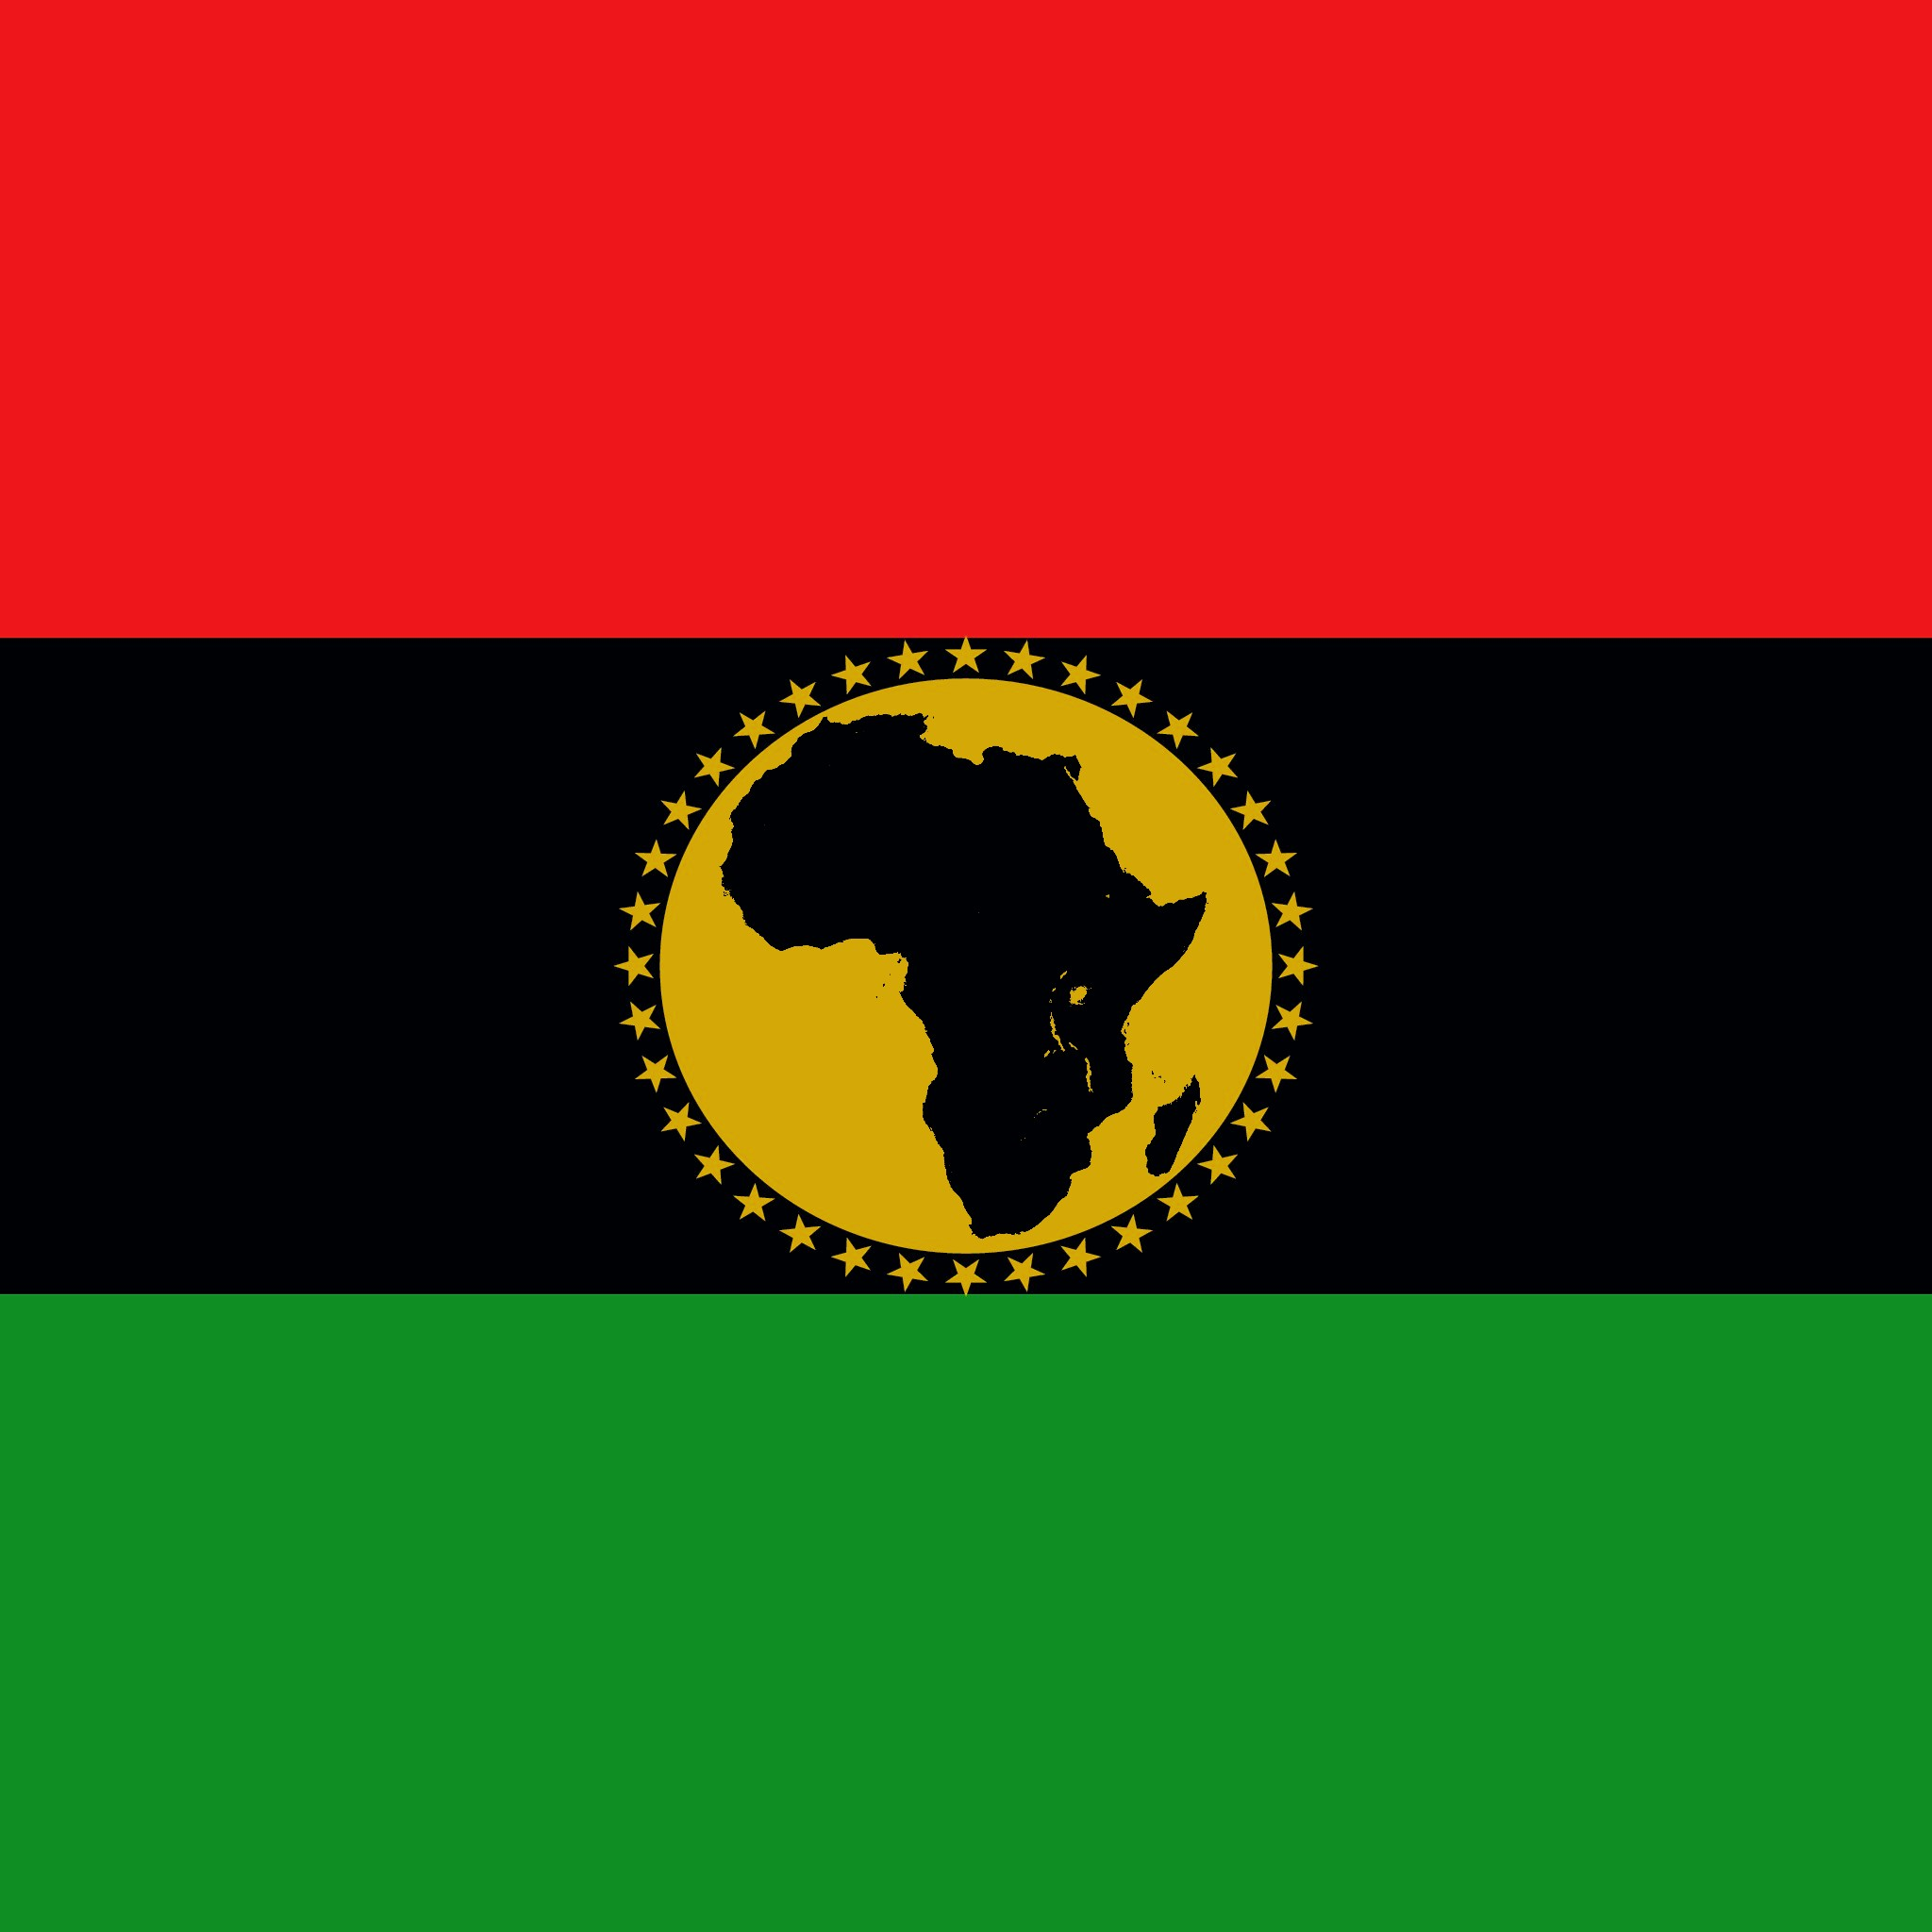 The PanAfricus Flag of Red Black and Green is embellished with a central, bright, yellow sun eclipsed by a darkened african continent in its core.  This flag represents our core values of upholding the path to innovation and creativity in the development of our continent.